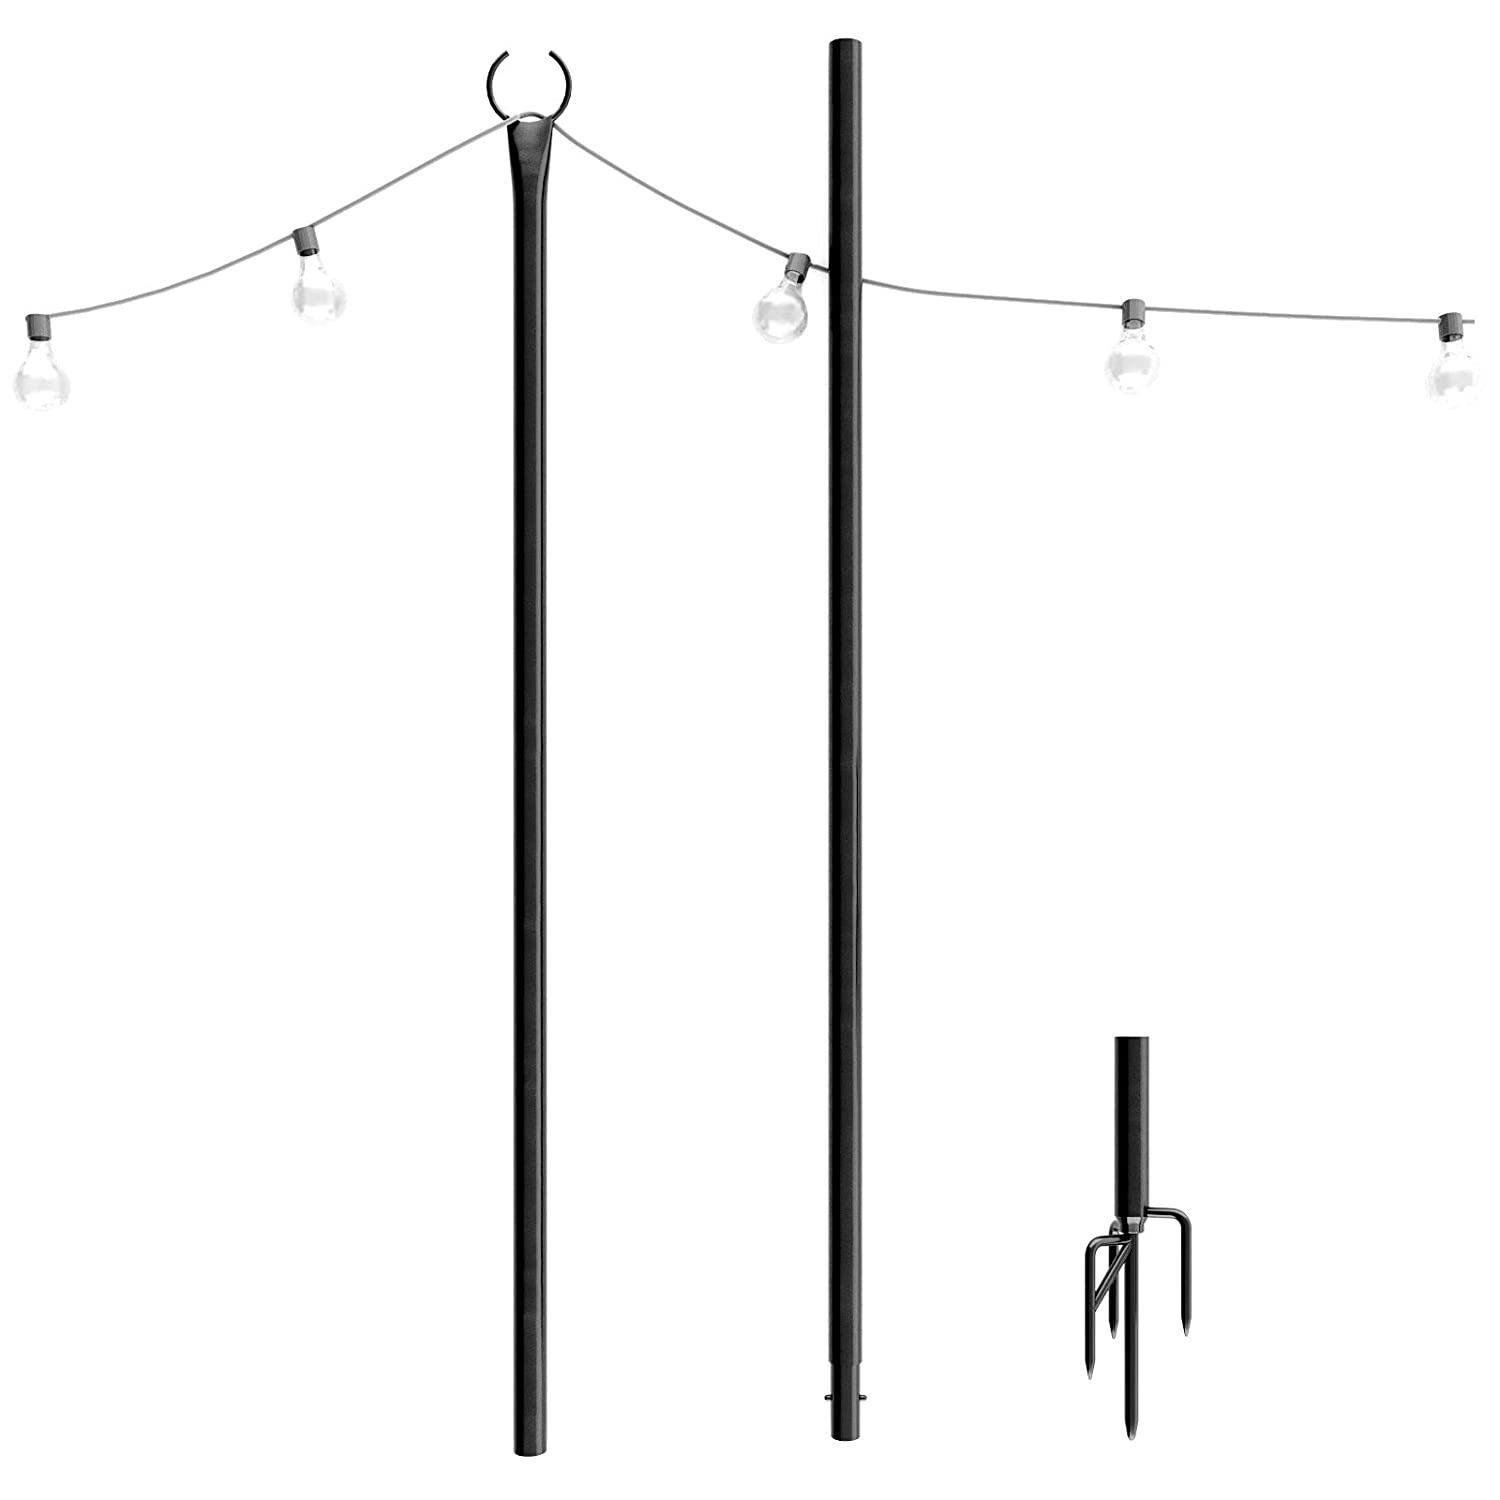 Outdoor String Lights Pole (1 x 8f) – New 4-Prong Sturdy Fork to Dig Deep -  Light Up Patio or Garden with LED Or Solar Hanging Bulbs - Water-Resistant